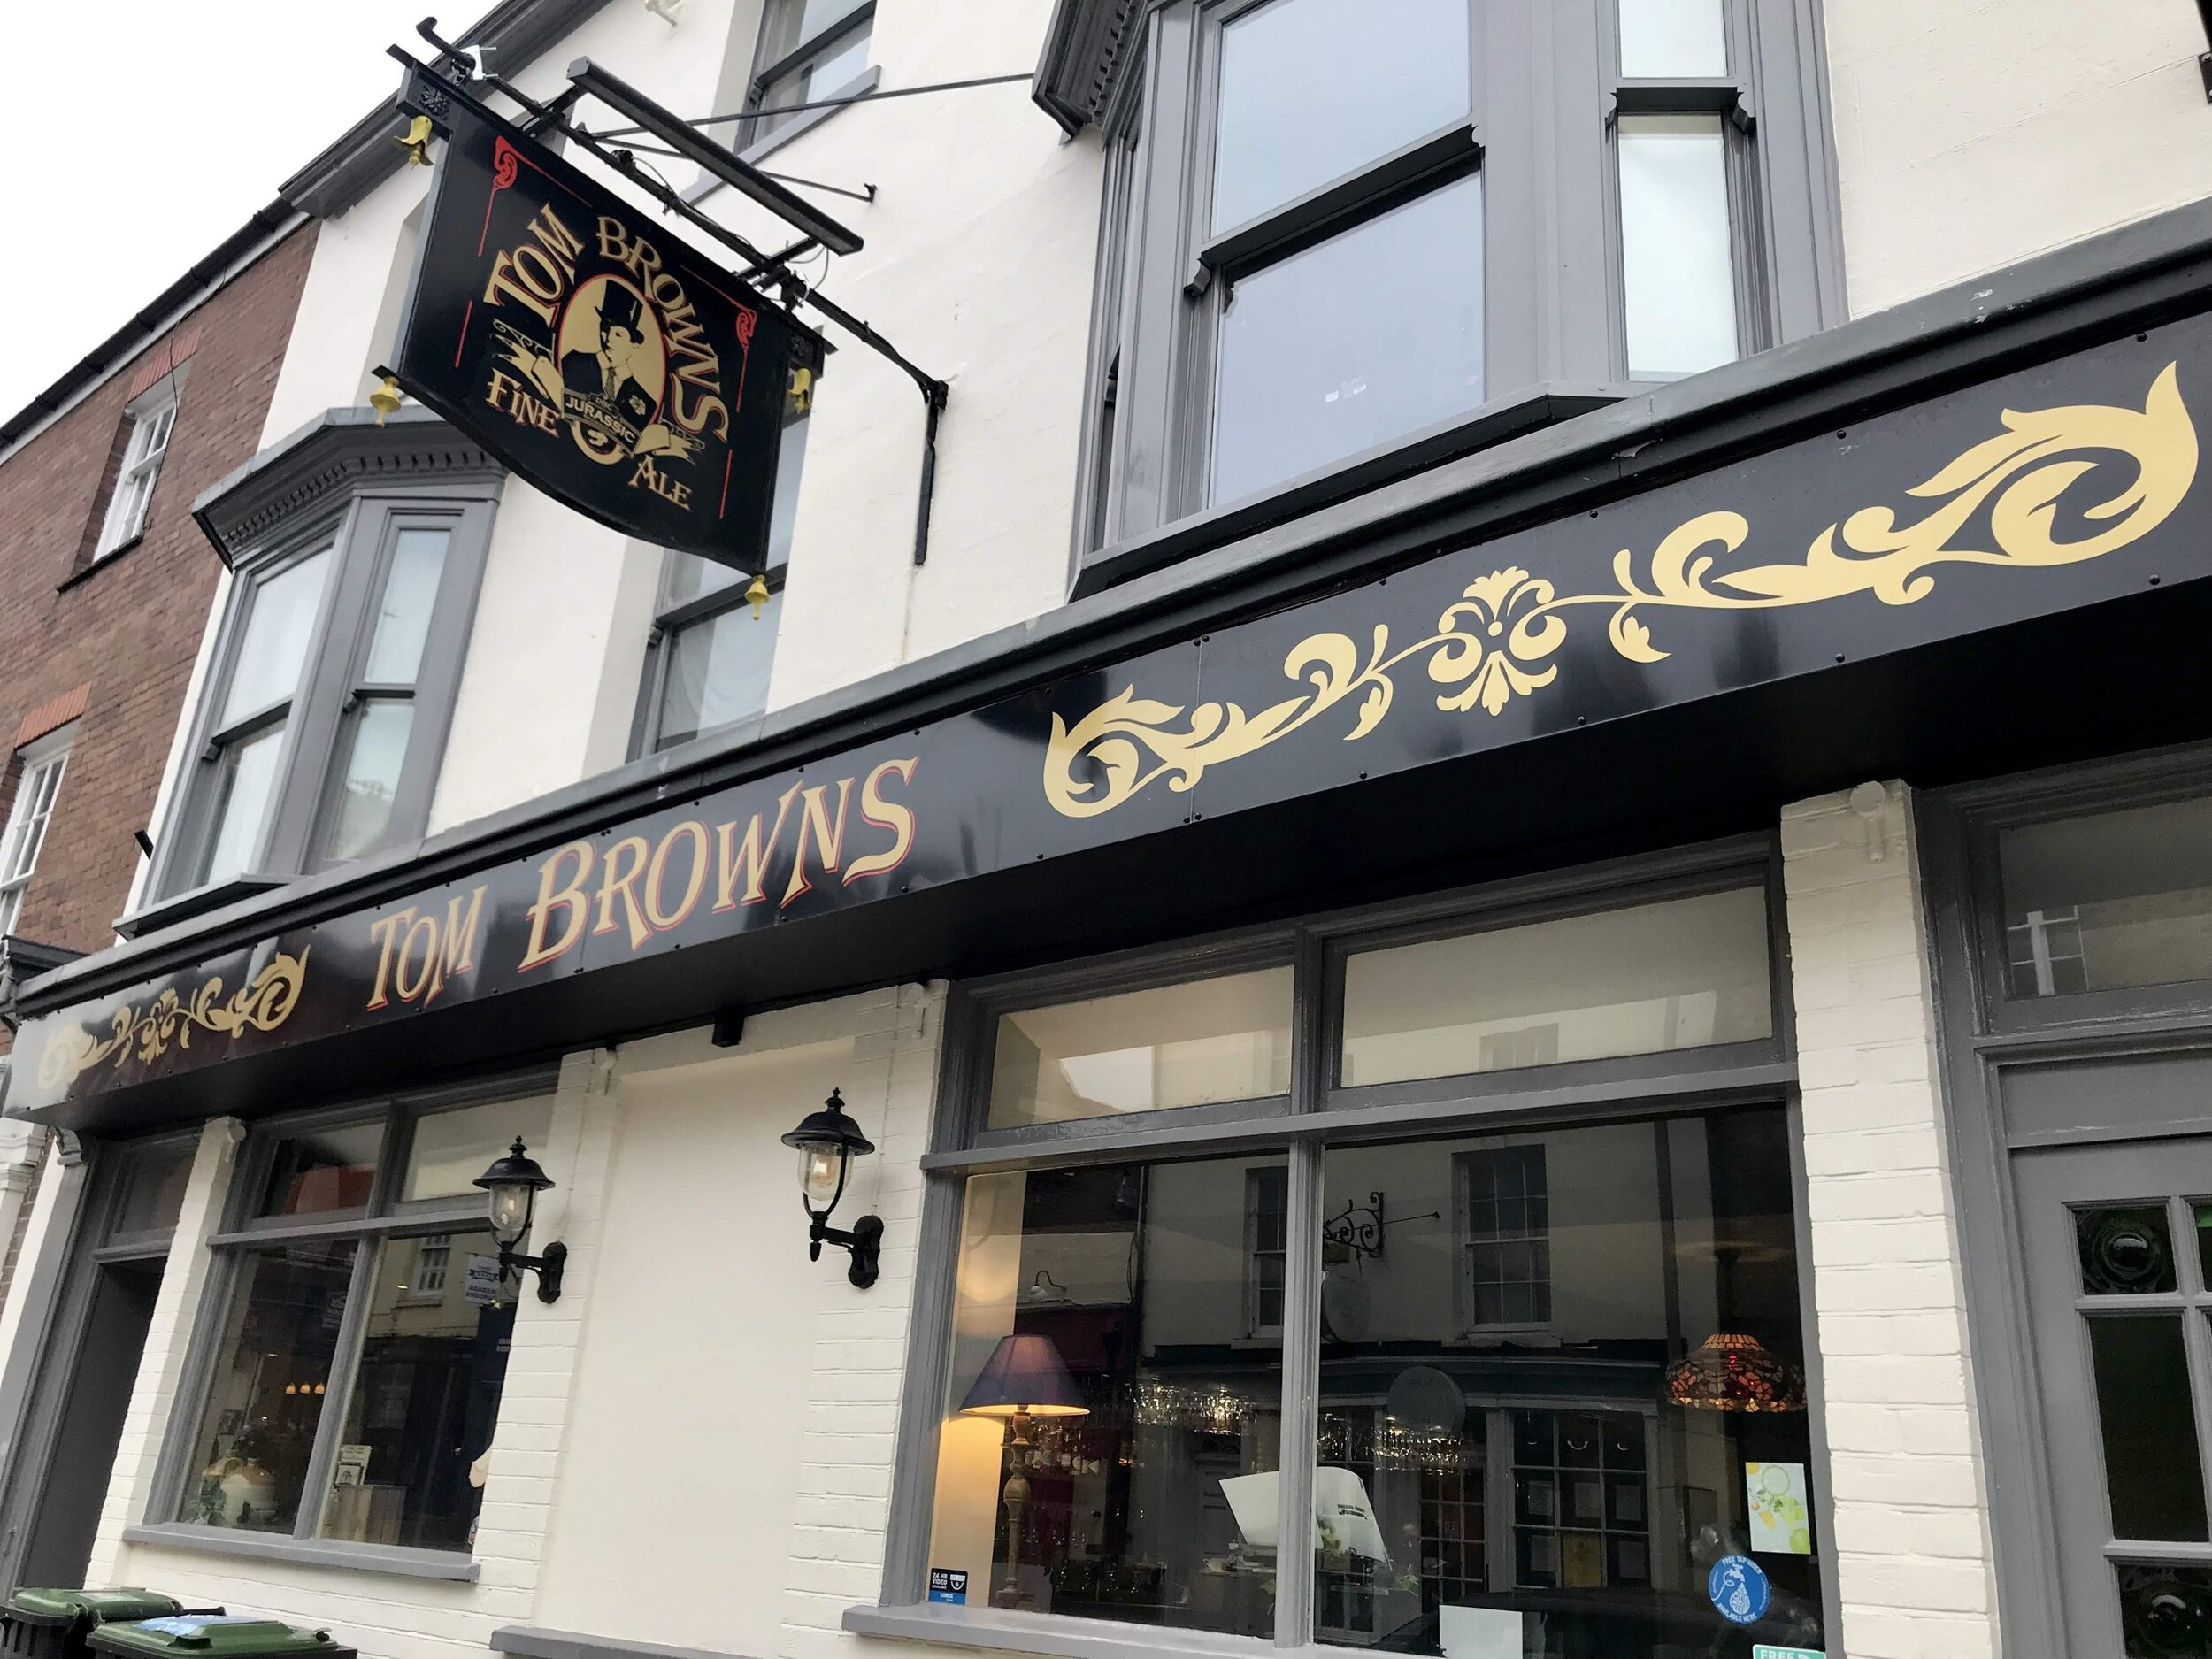 Tom Browns Pub.jpg